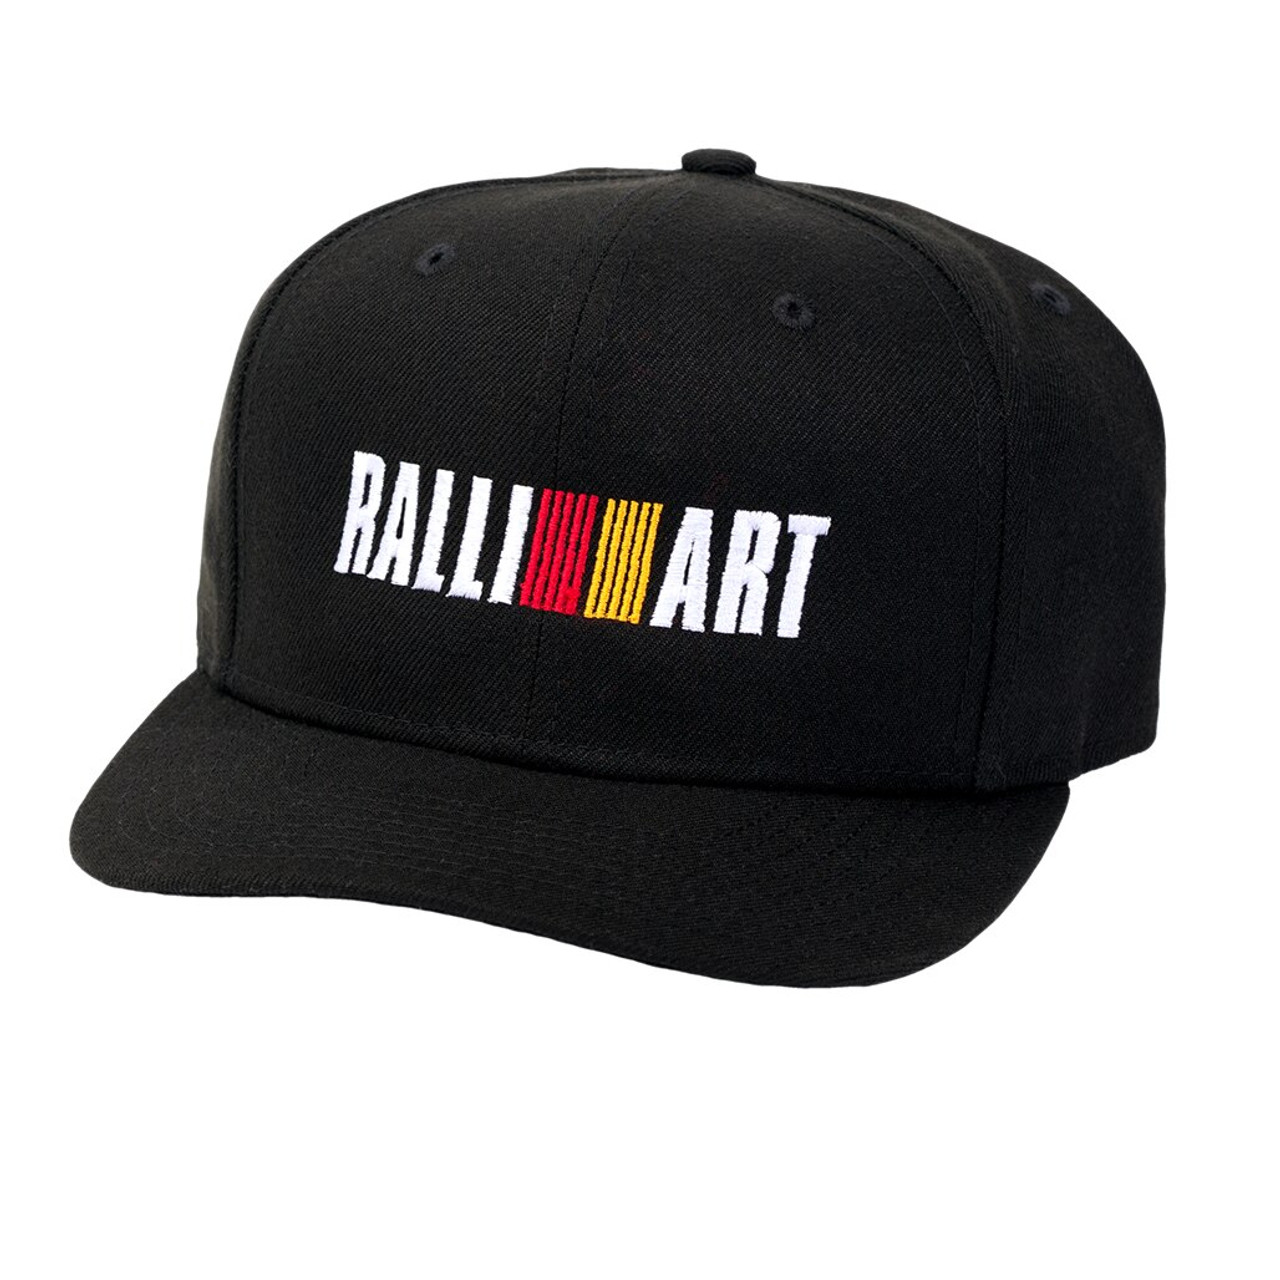 Ralliart New Era Snapback Hat